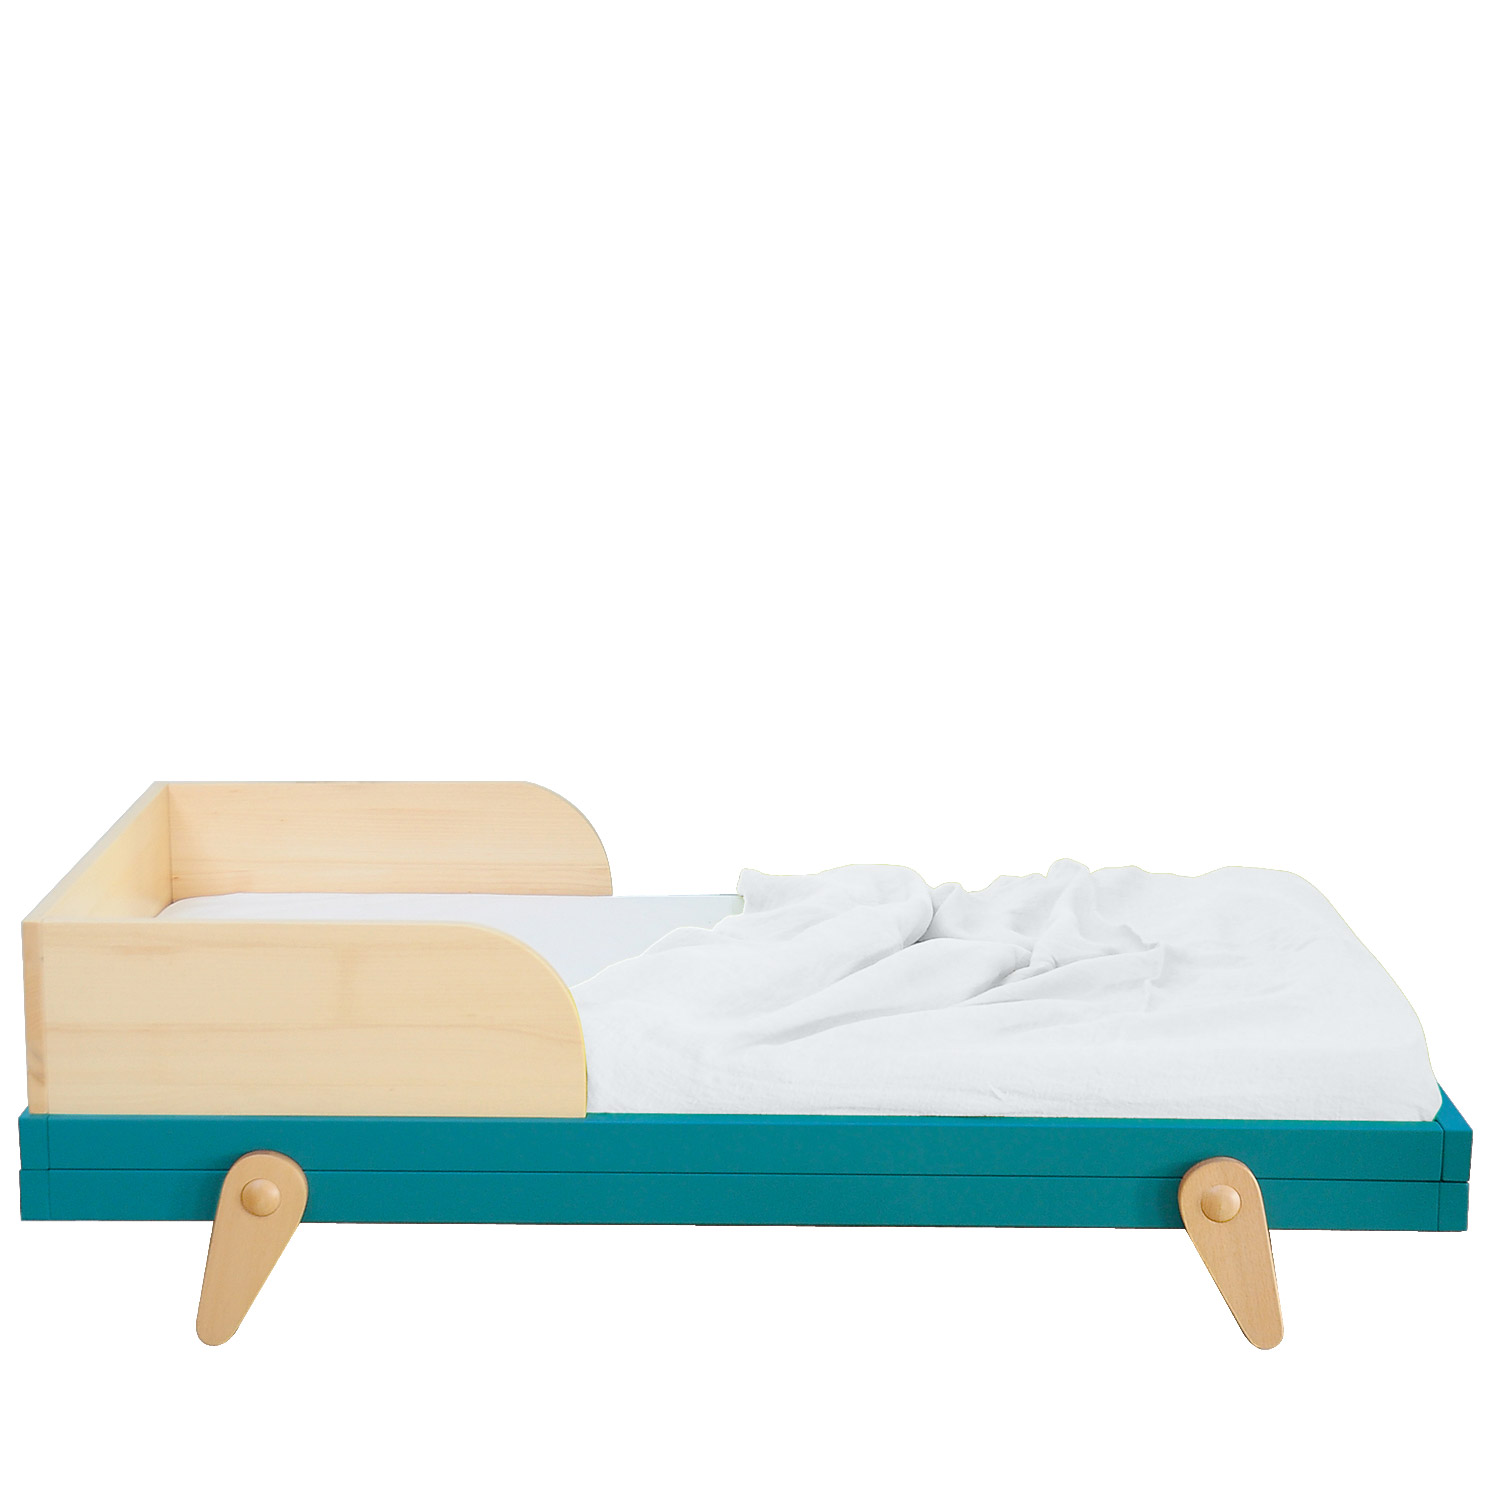 Laurette Juniorbett Lit Petipeton Junior 70x140 cm